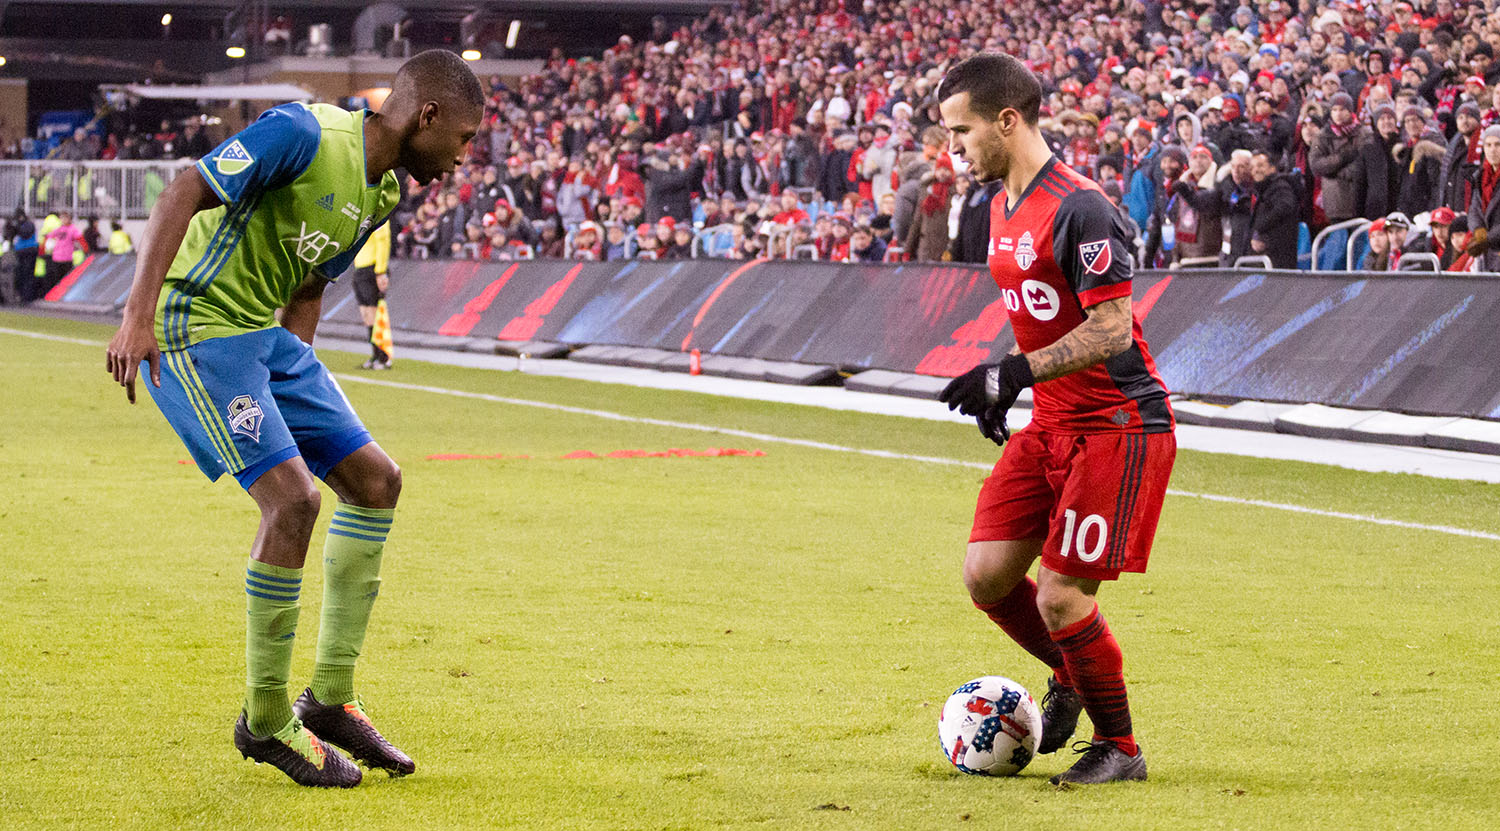 Sebastian Giovinco tries to get past another Seattle Sounder defender at BMO FIeld in 2017.Image by Dennis Marciniak of denMAR Media.